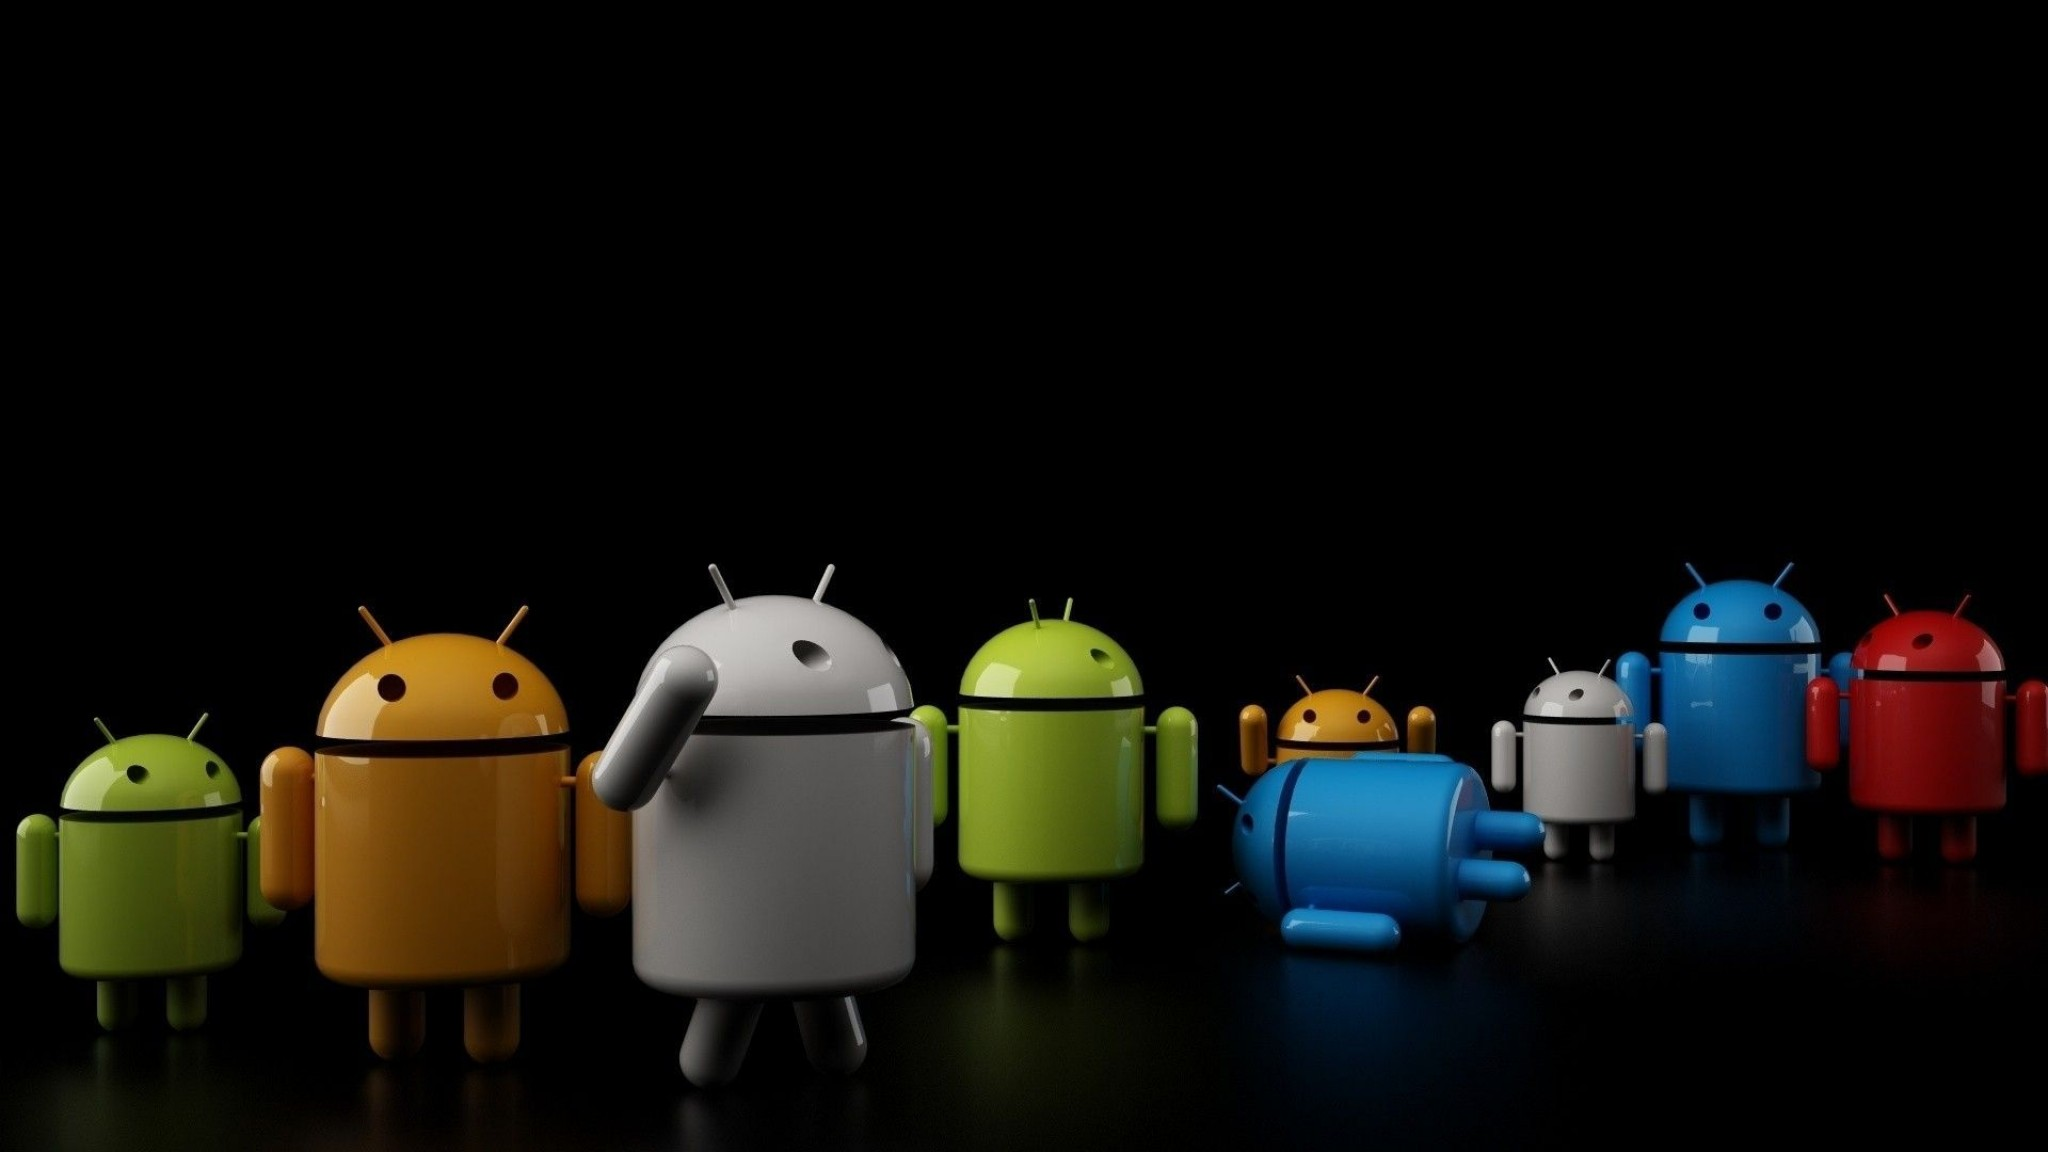 Google Android Wallpaper: Awesome Collection Of HD Google Wallpapers For Free Download